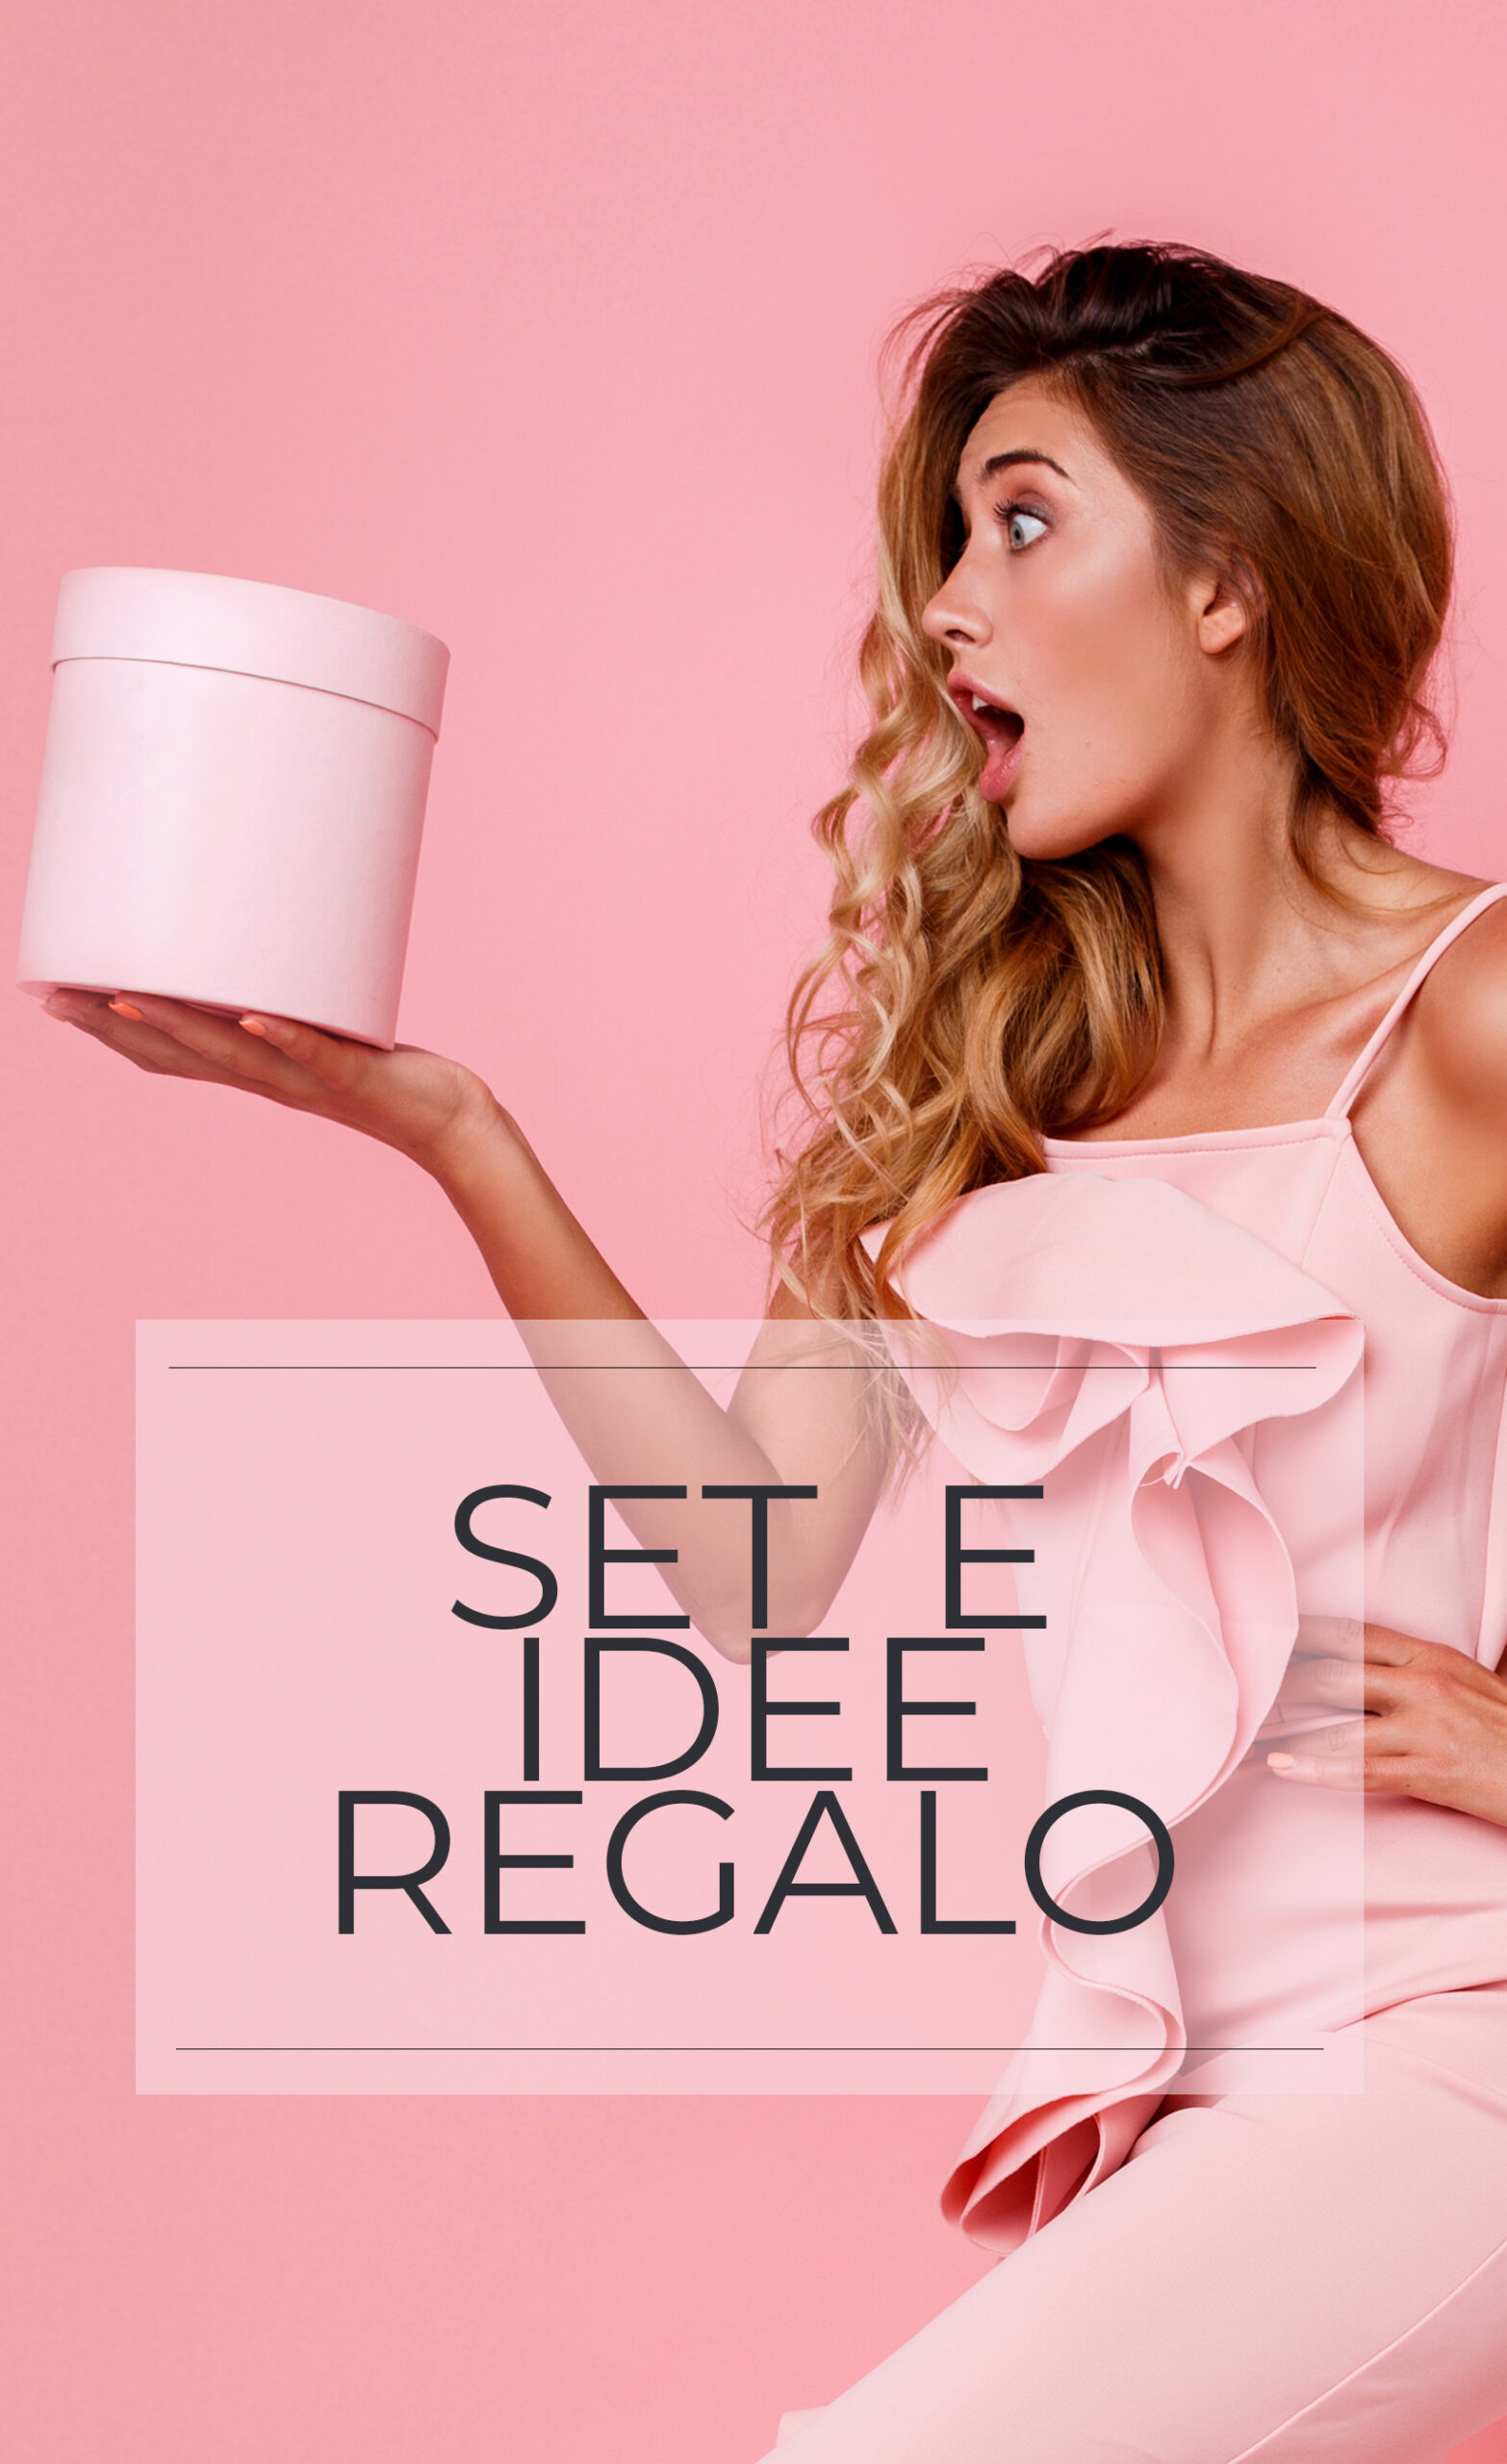 Glamour blonde girl with surprise face  holding  gift box and standing over  rose  background in  elegant  pink dress . Ecstatic emotions.